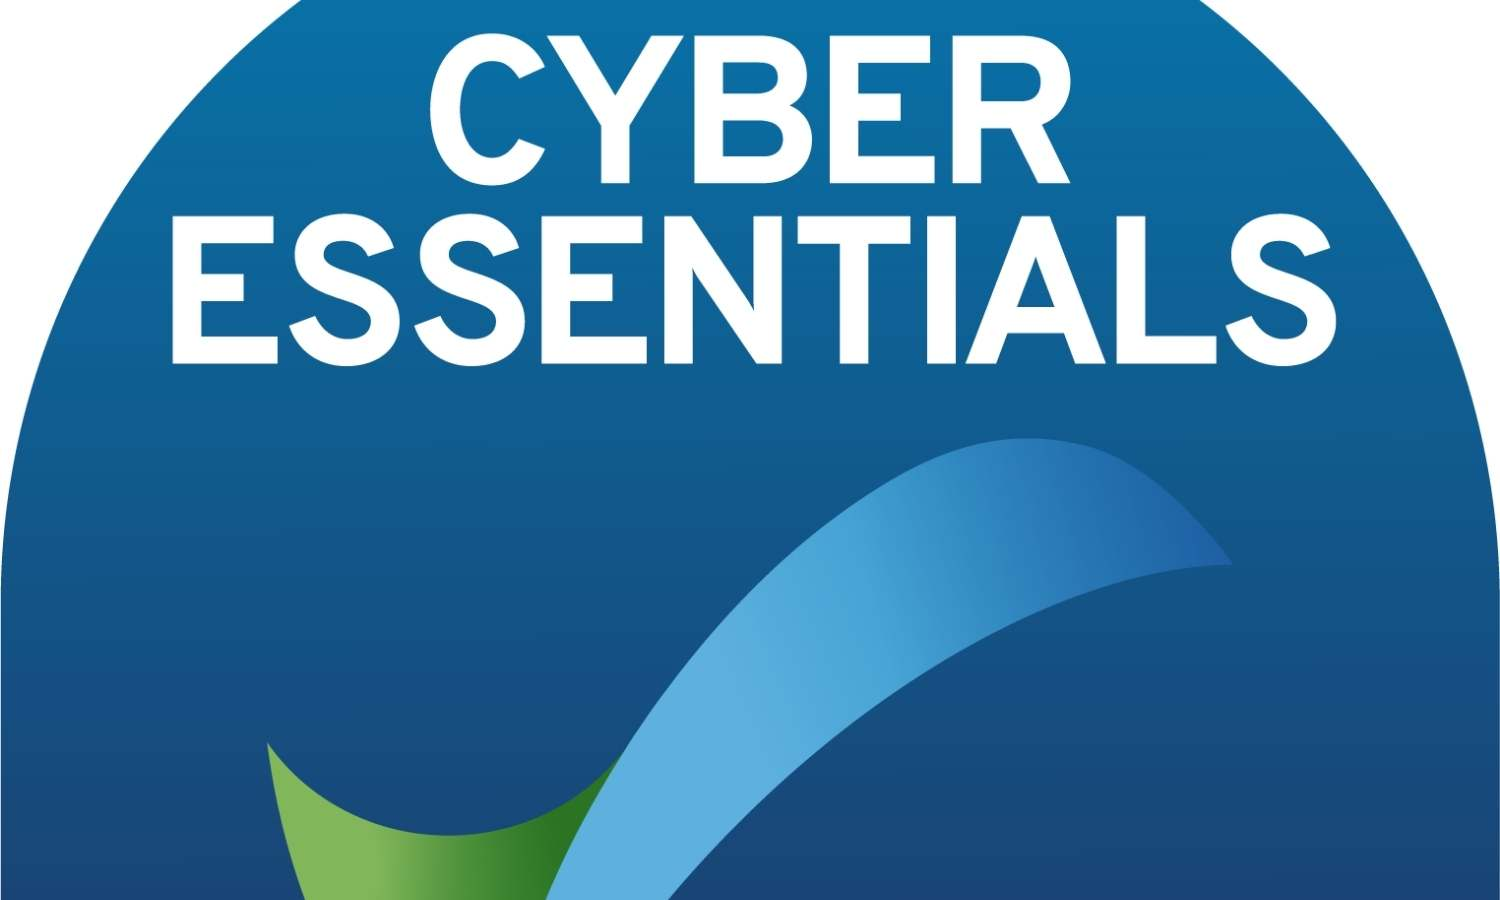 Nowell Meller are very proud to officially be Cyber Essentials Certified